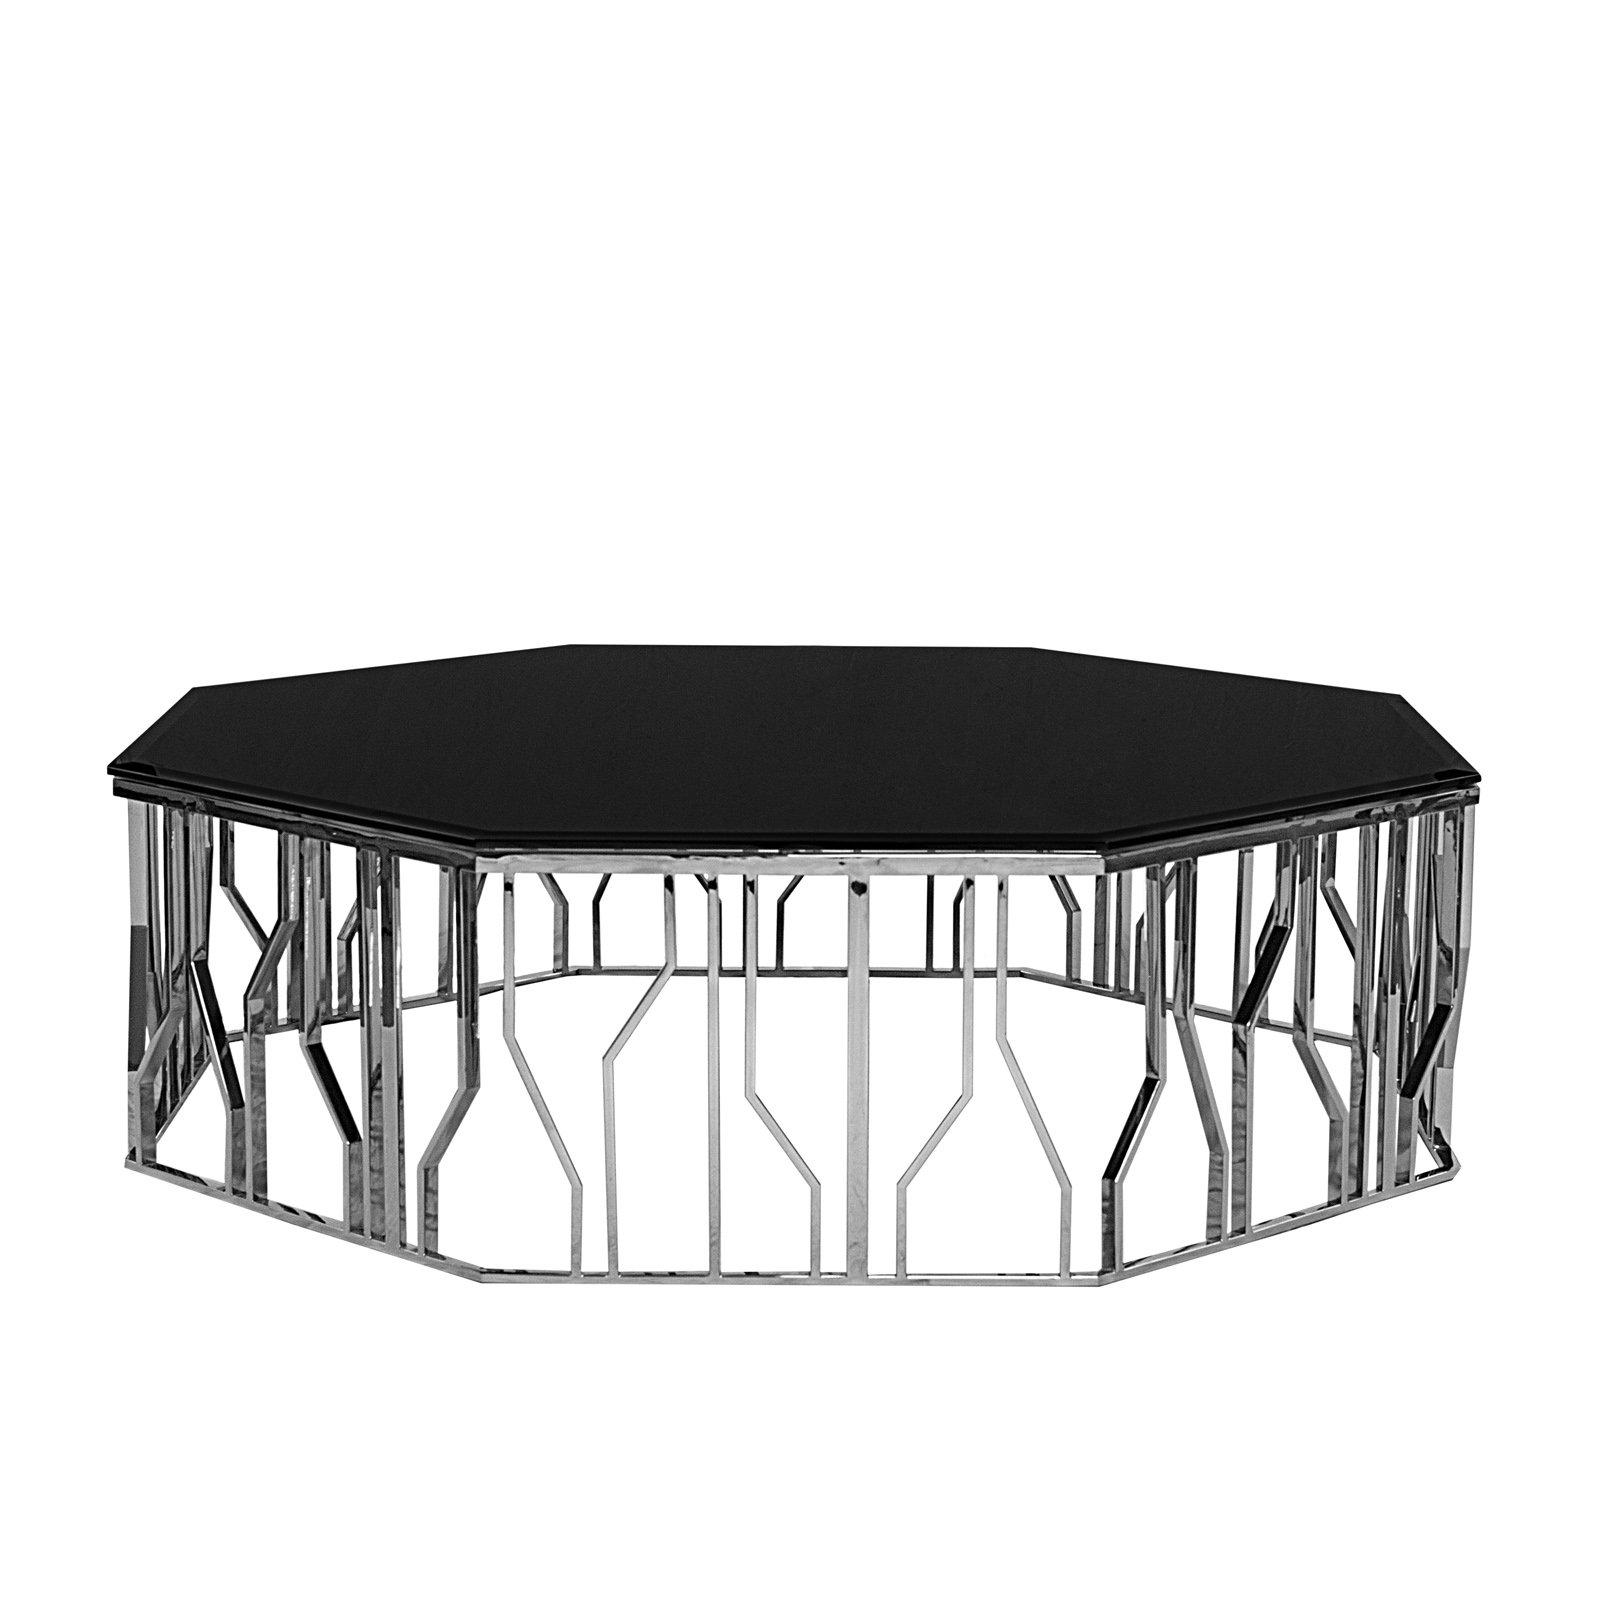 Lorensia Coffee Table